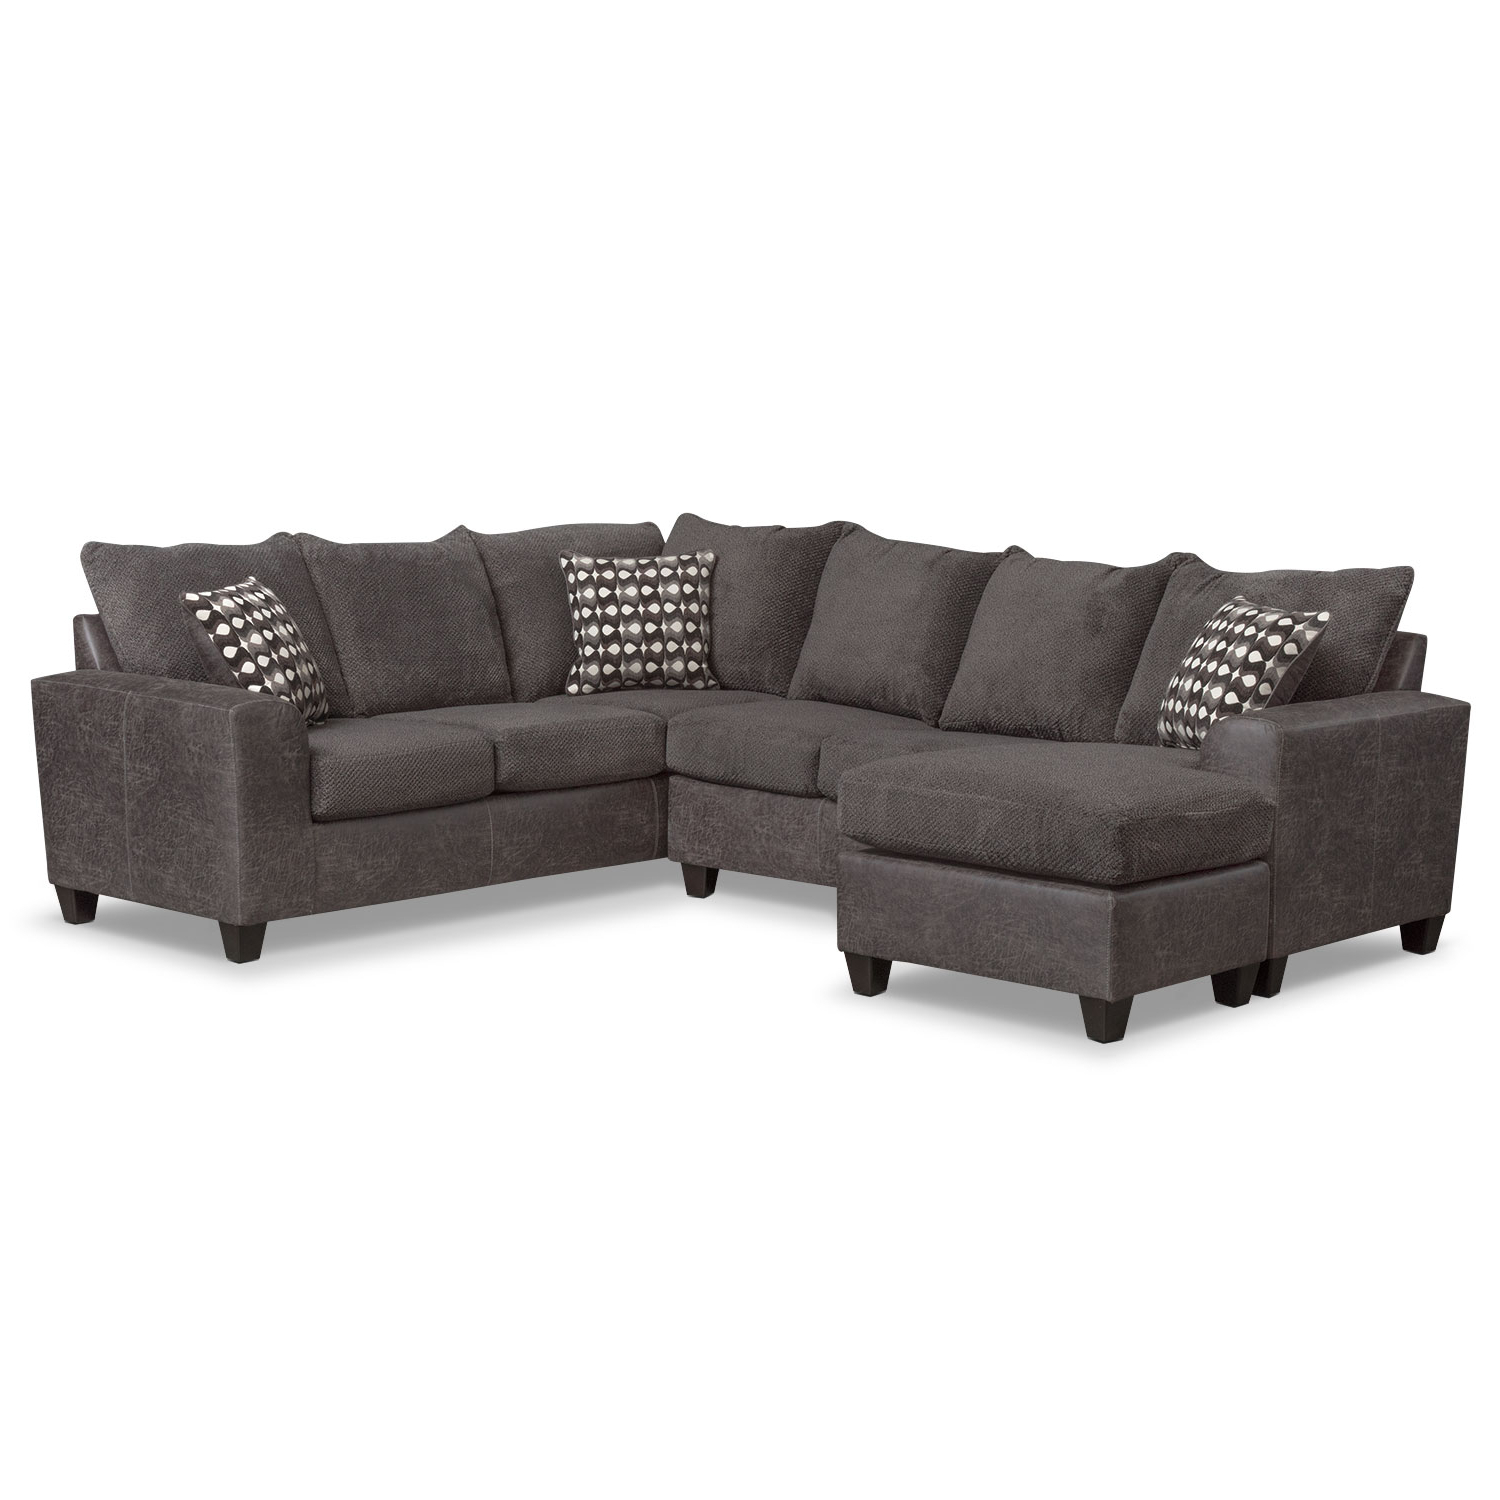 Sleeper Sectional With Chaise – Tidex For Latest Lucy Dark Grey 2 Piece Sleeper Sectionals With Laf Chaise (Gallery 17 of 20)